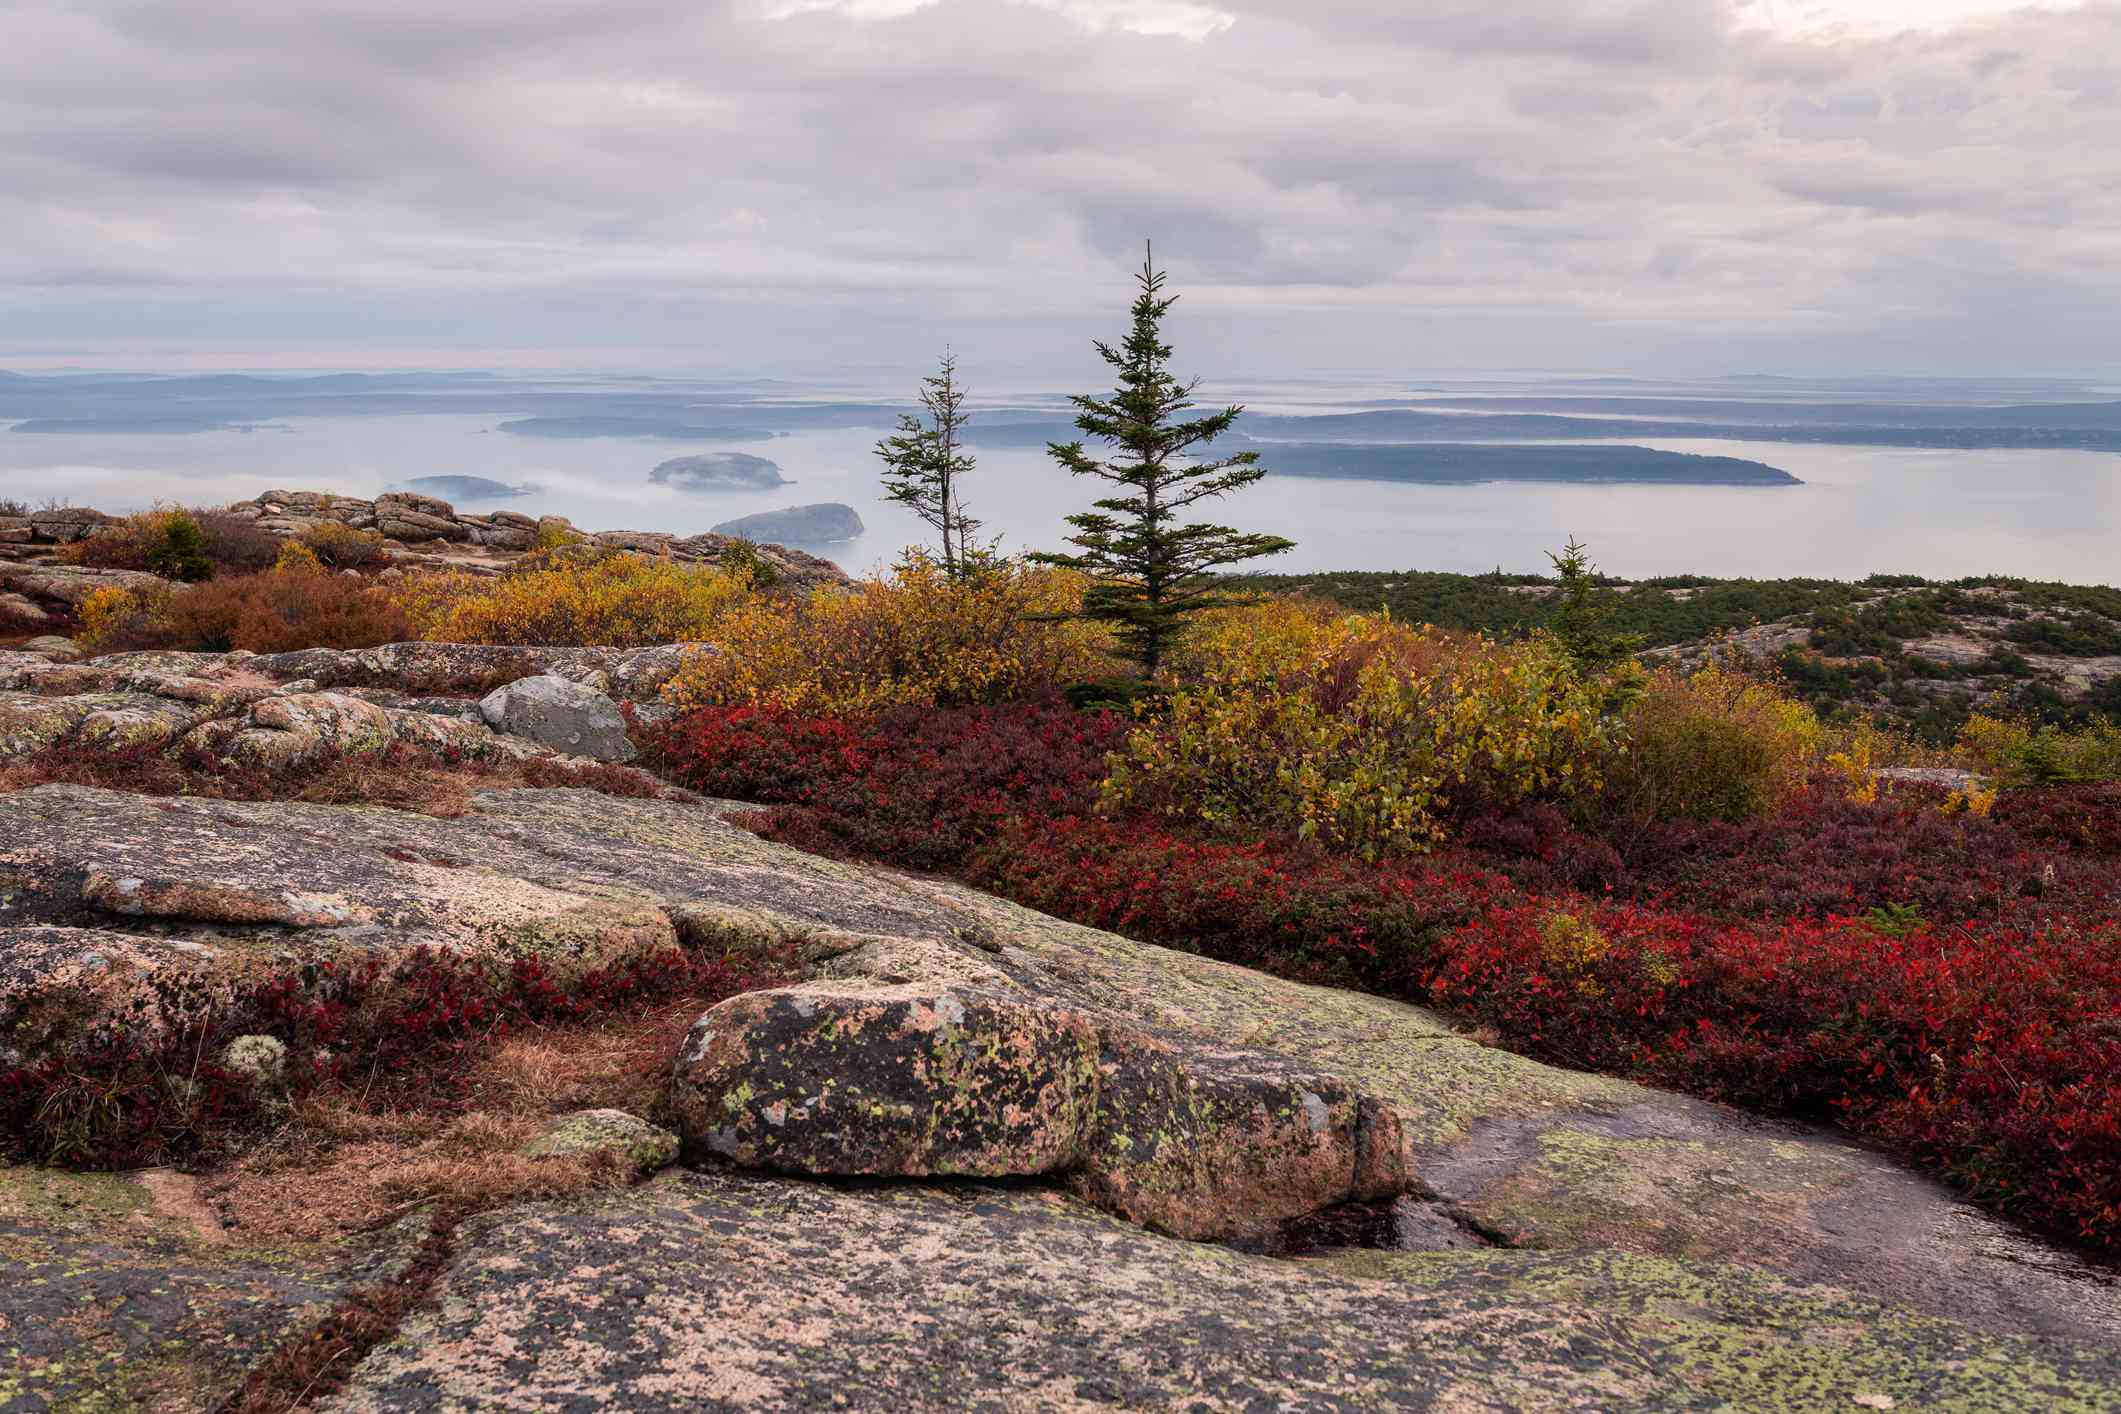 Autumn foliage on Cadillac Mountain with view of the bay